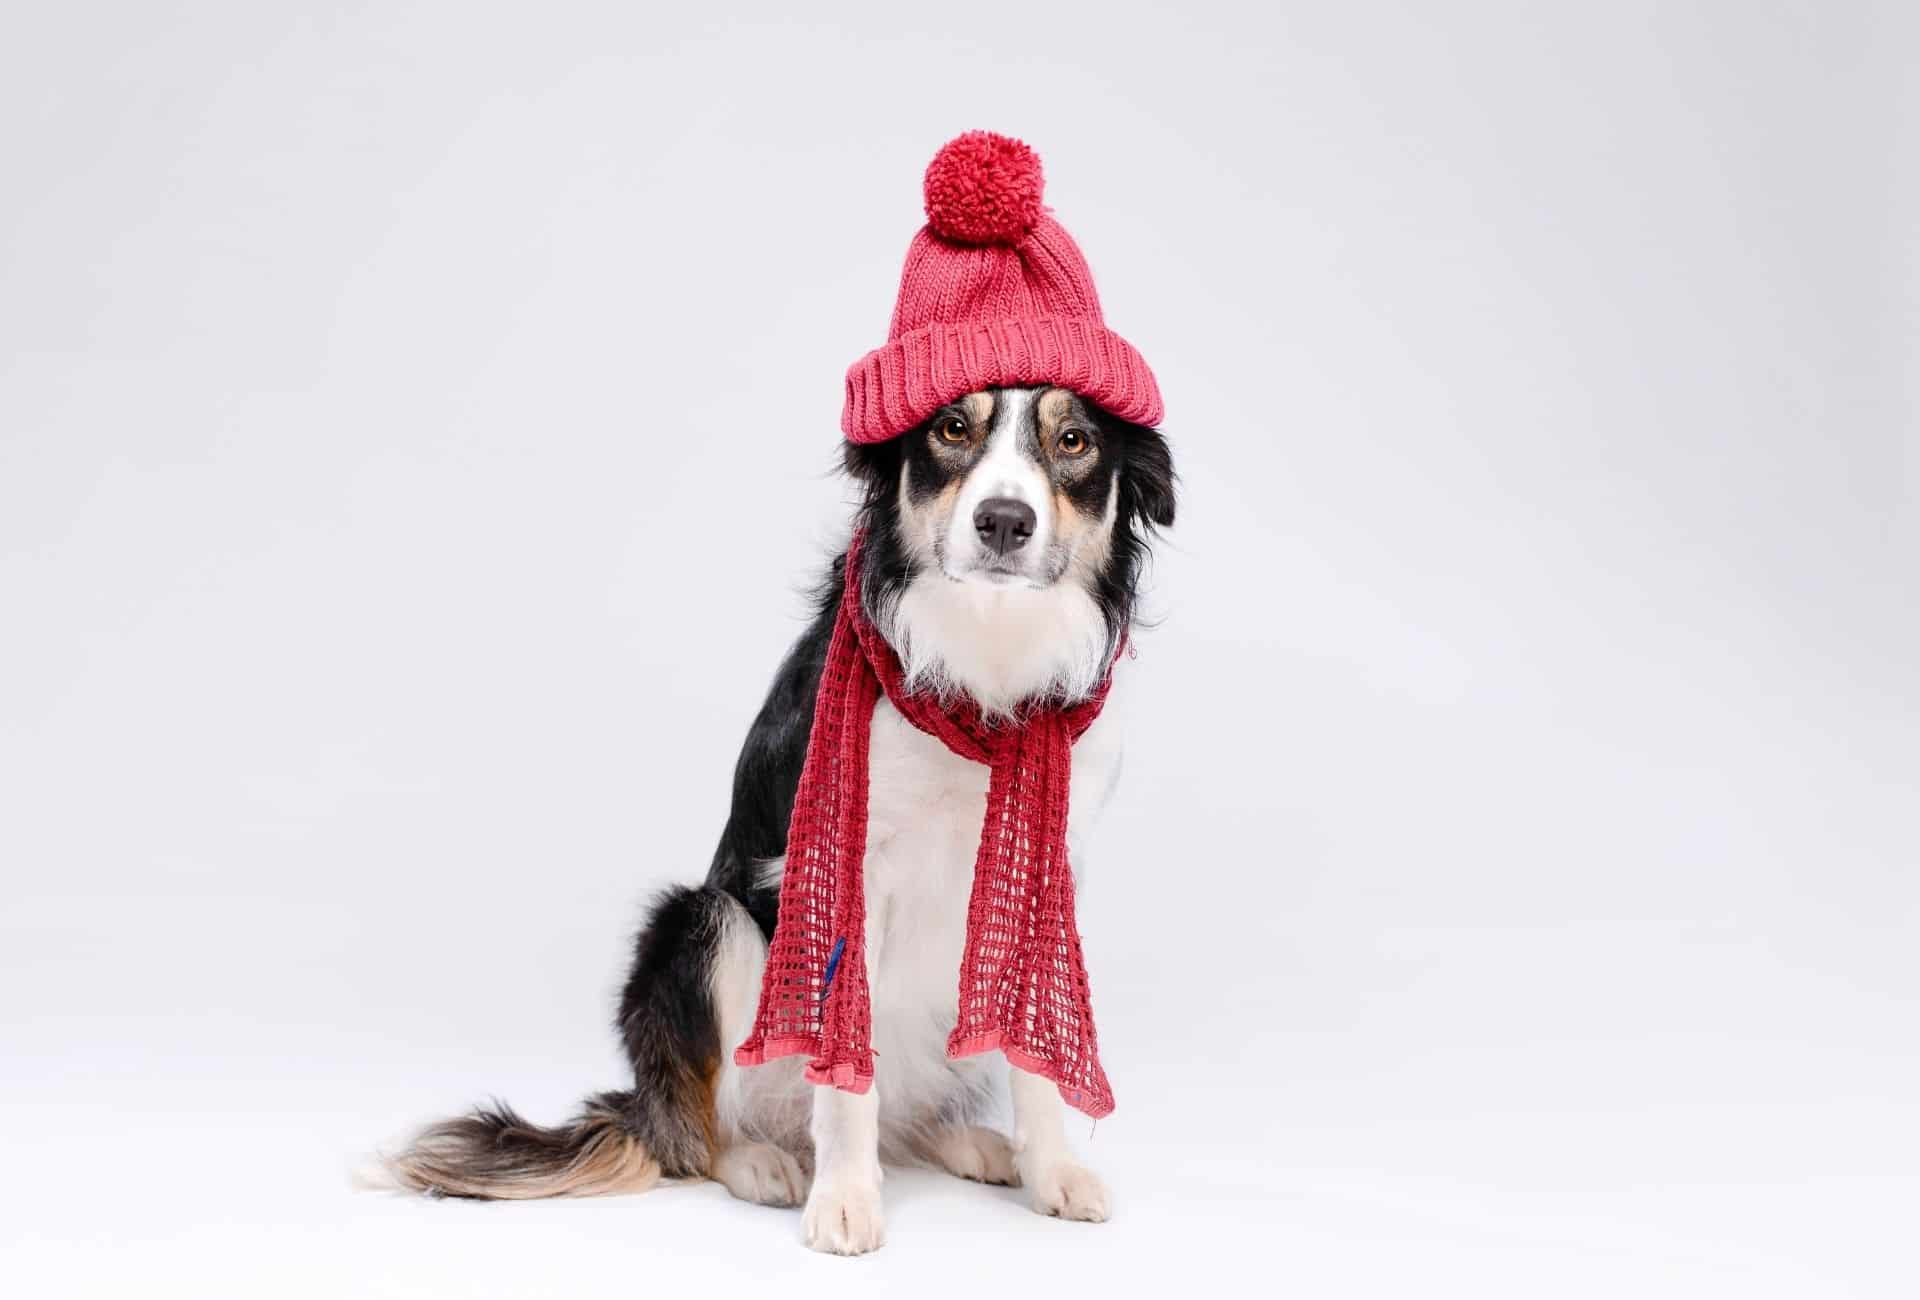 Dog with red scarf and beanie